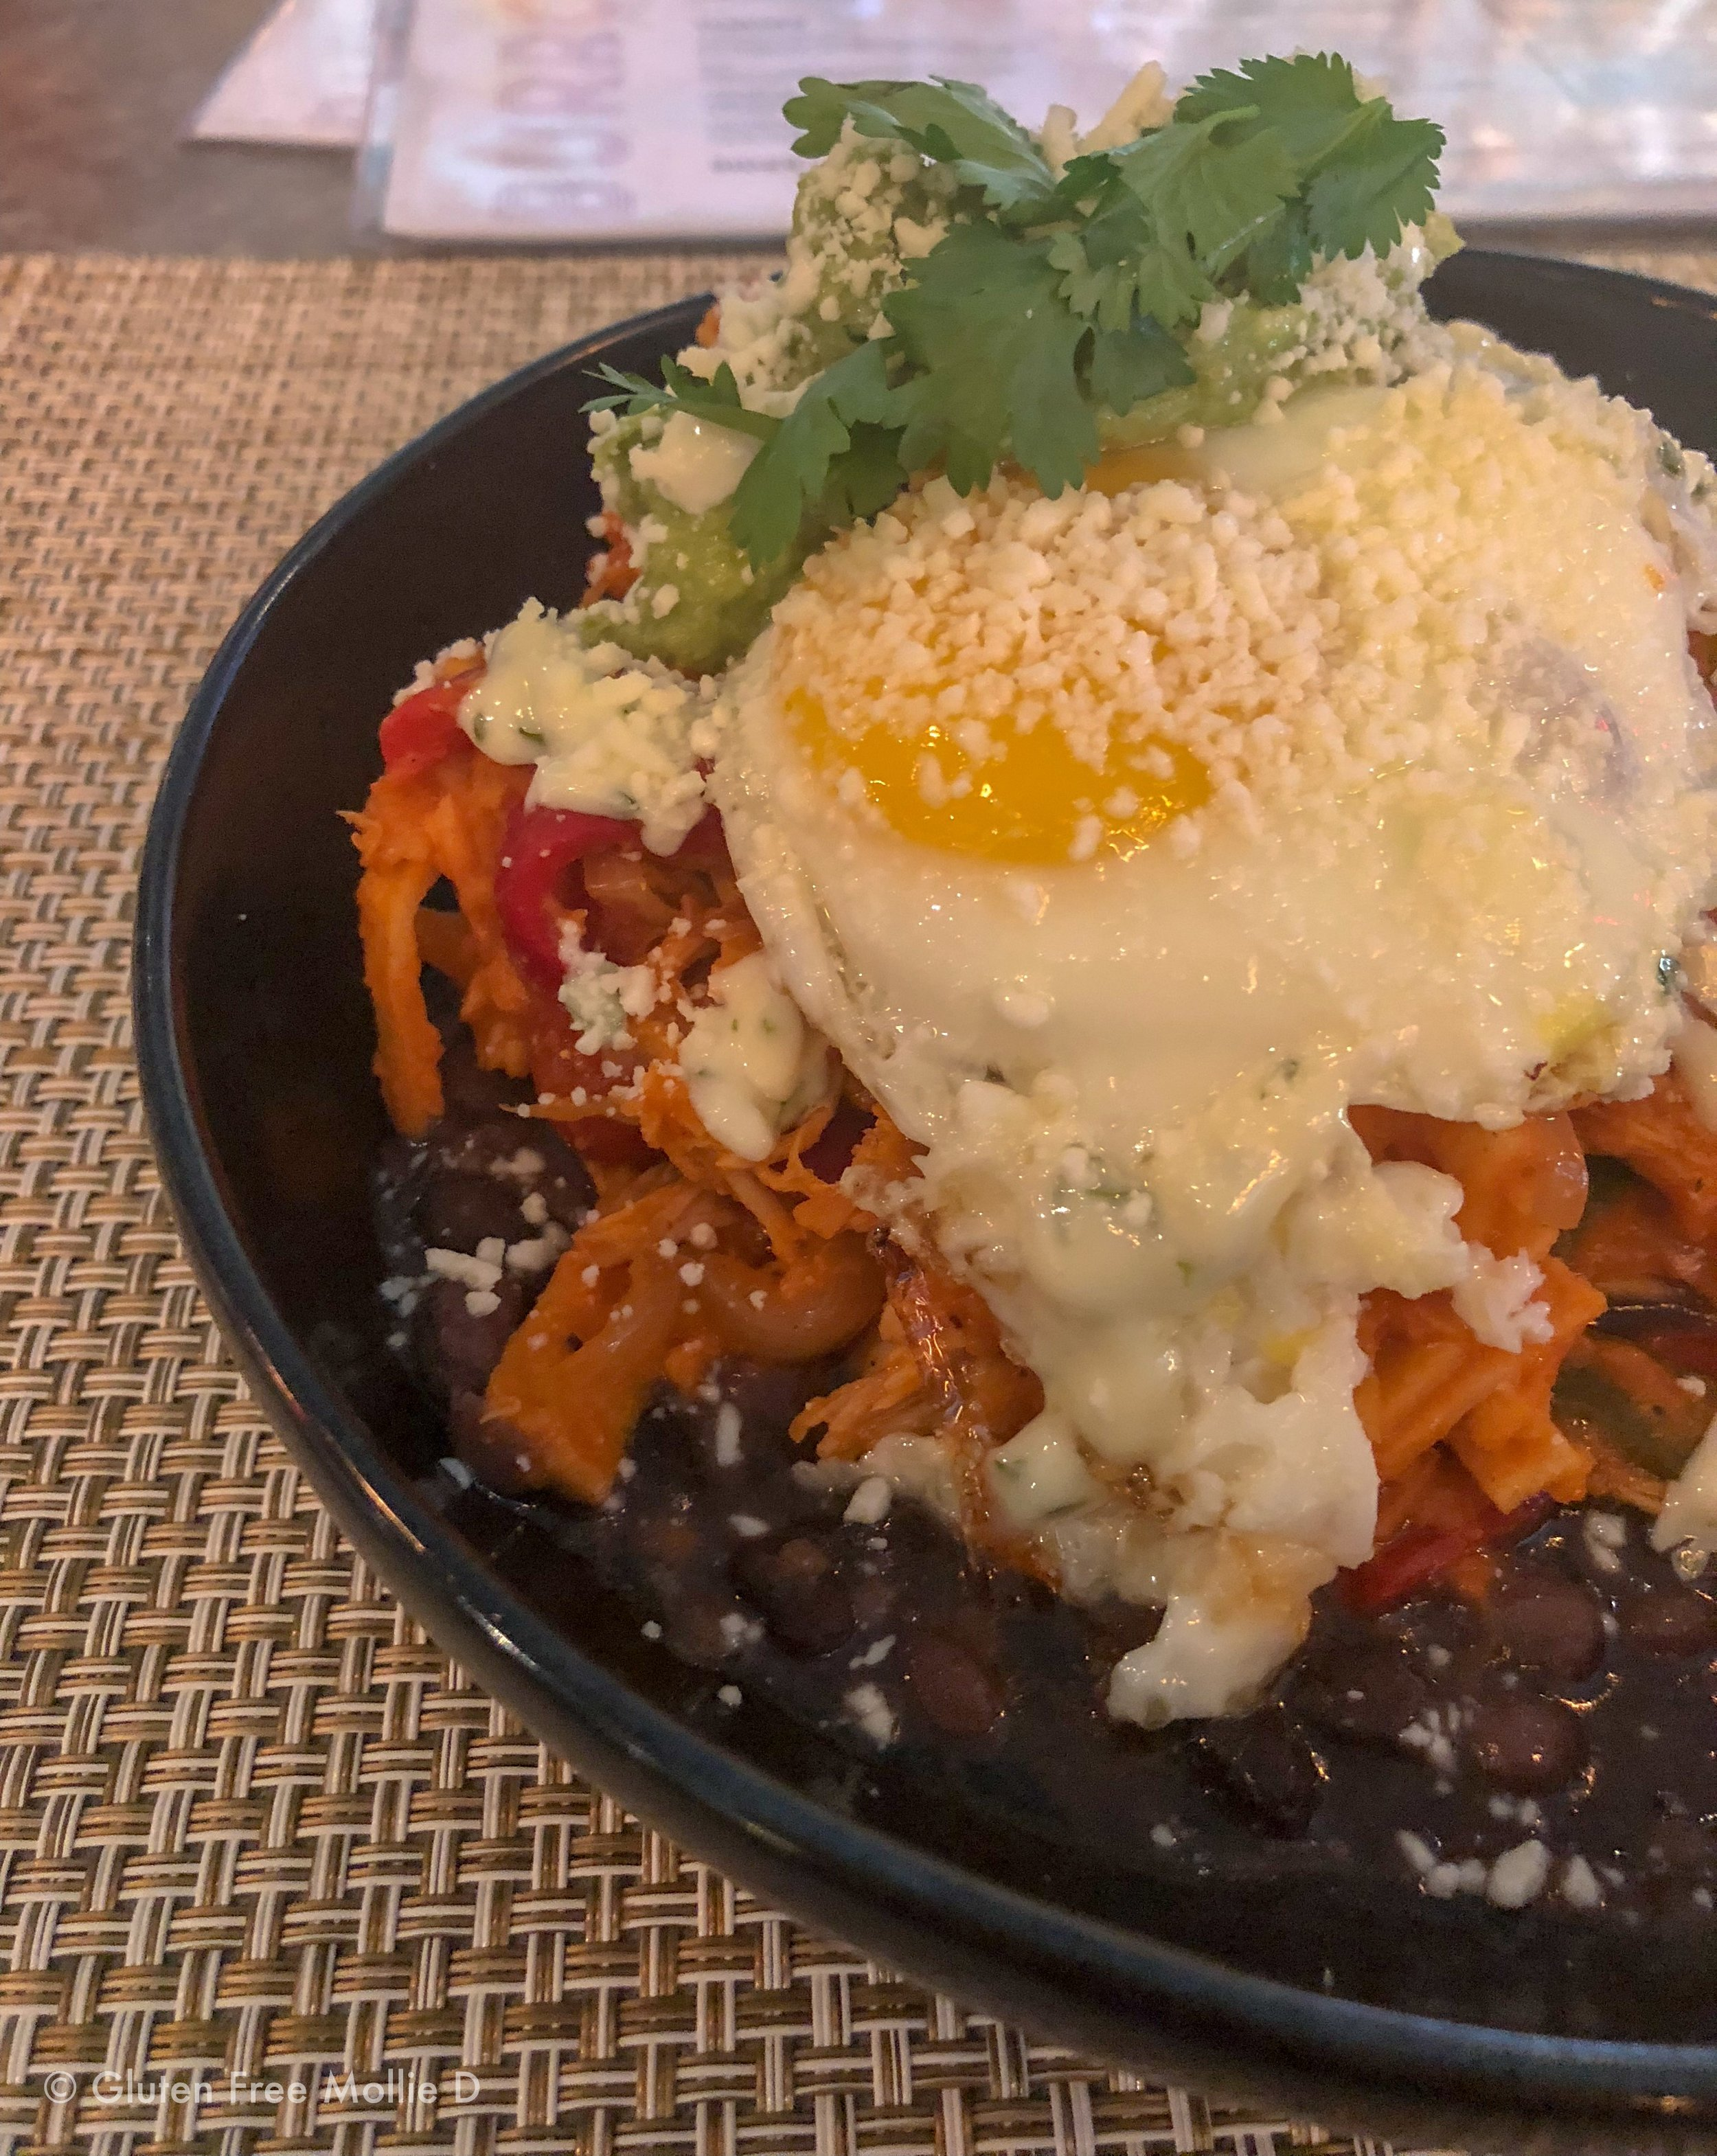 Chilaquiles. A brunch staple. :)